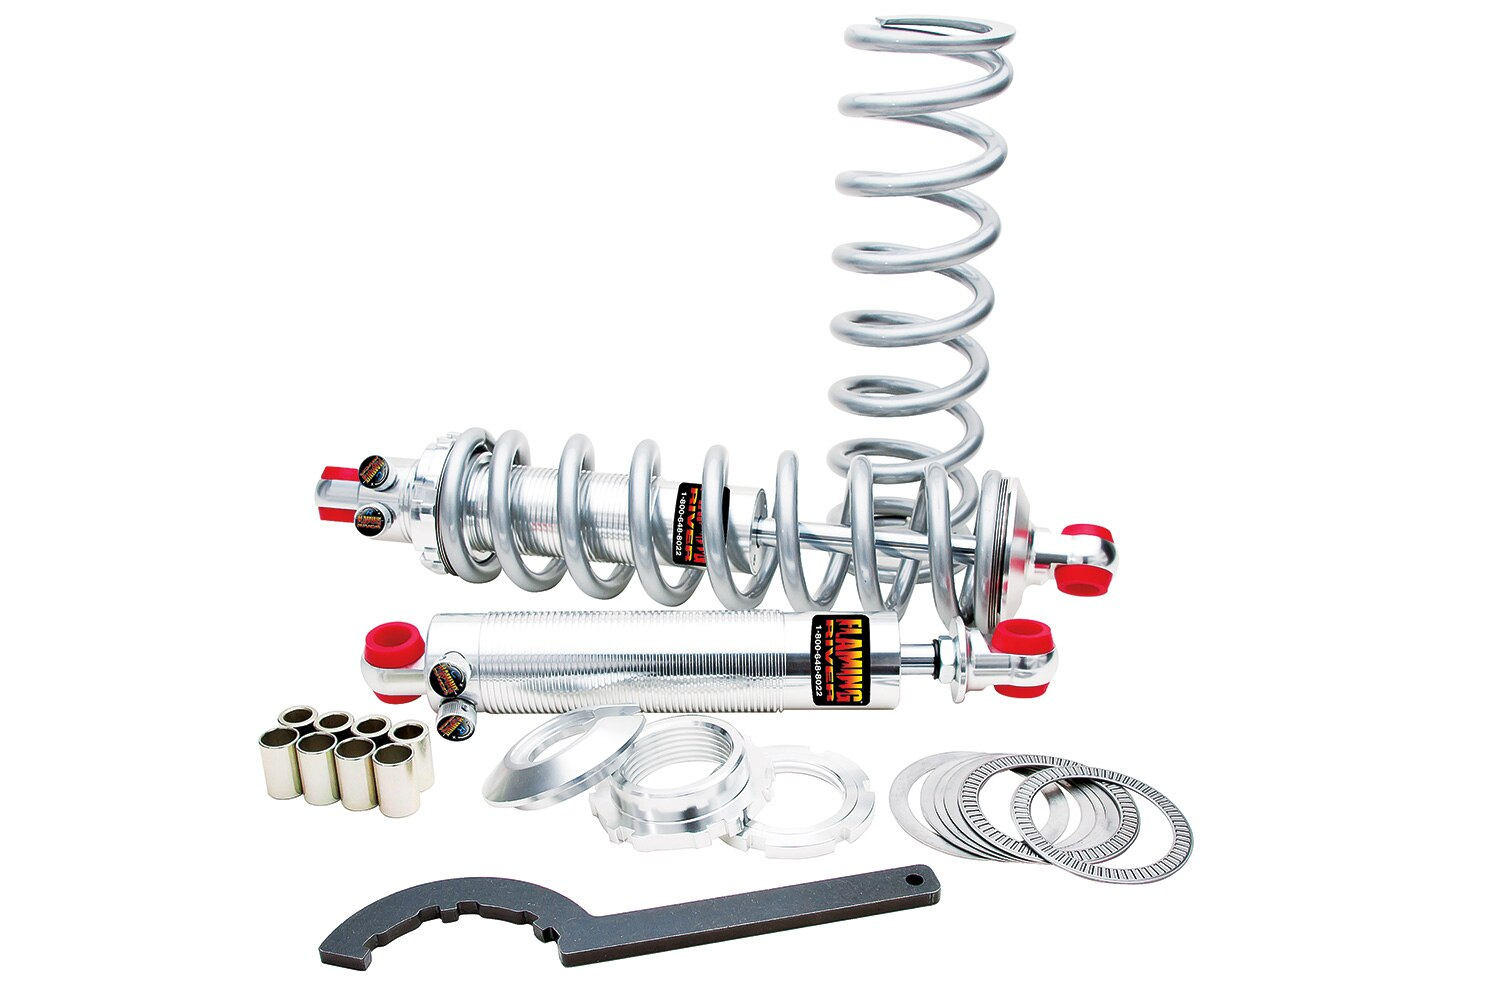 lowrider-new-products-february-2014-flaming-rivers-coil-over-shocks-and-springs-promo